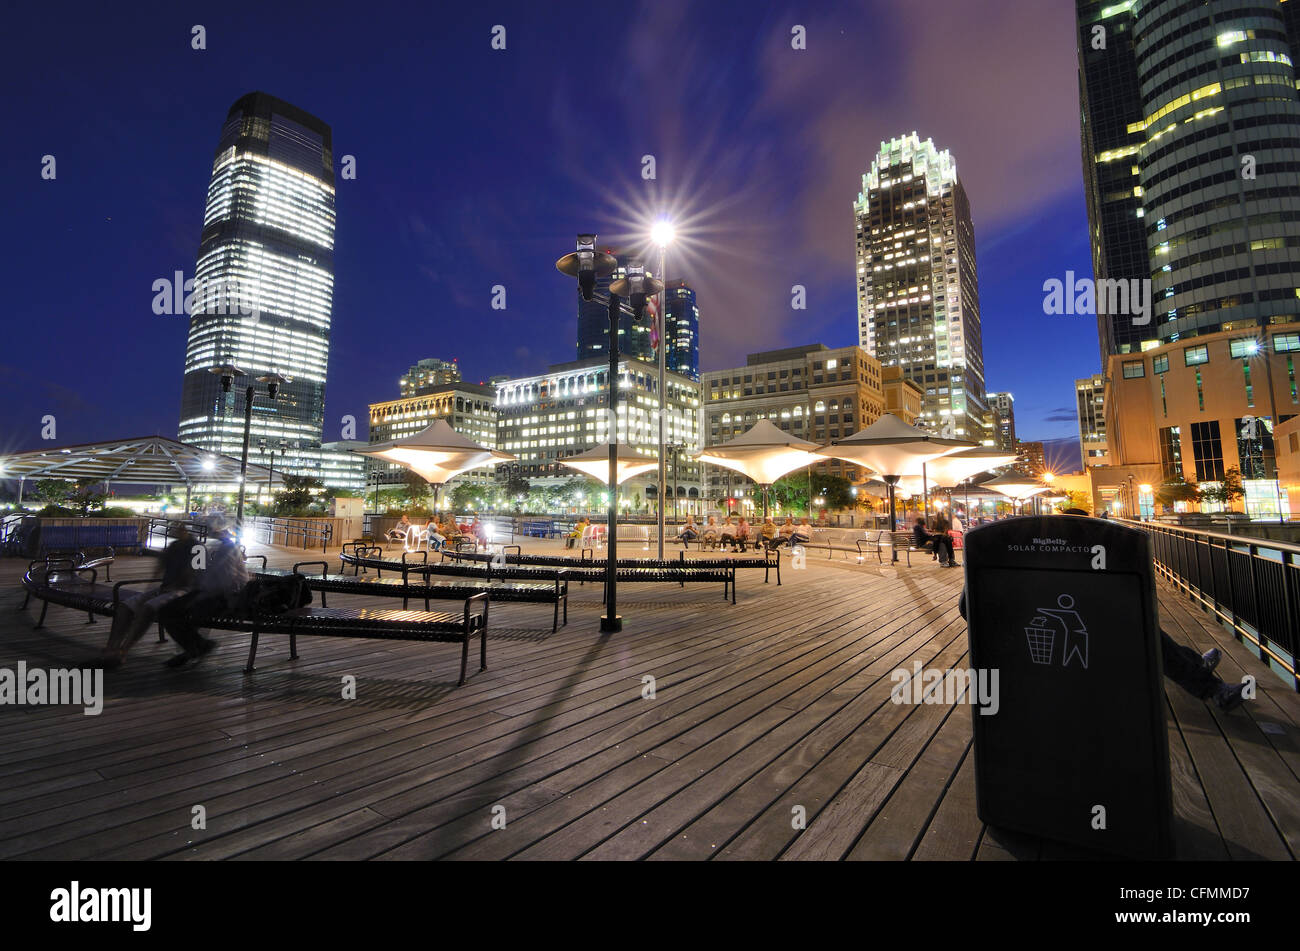 Pier in Exchange Place in Jersey City, New Jersey, USA. Stockbild